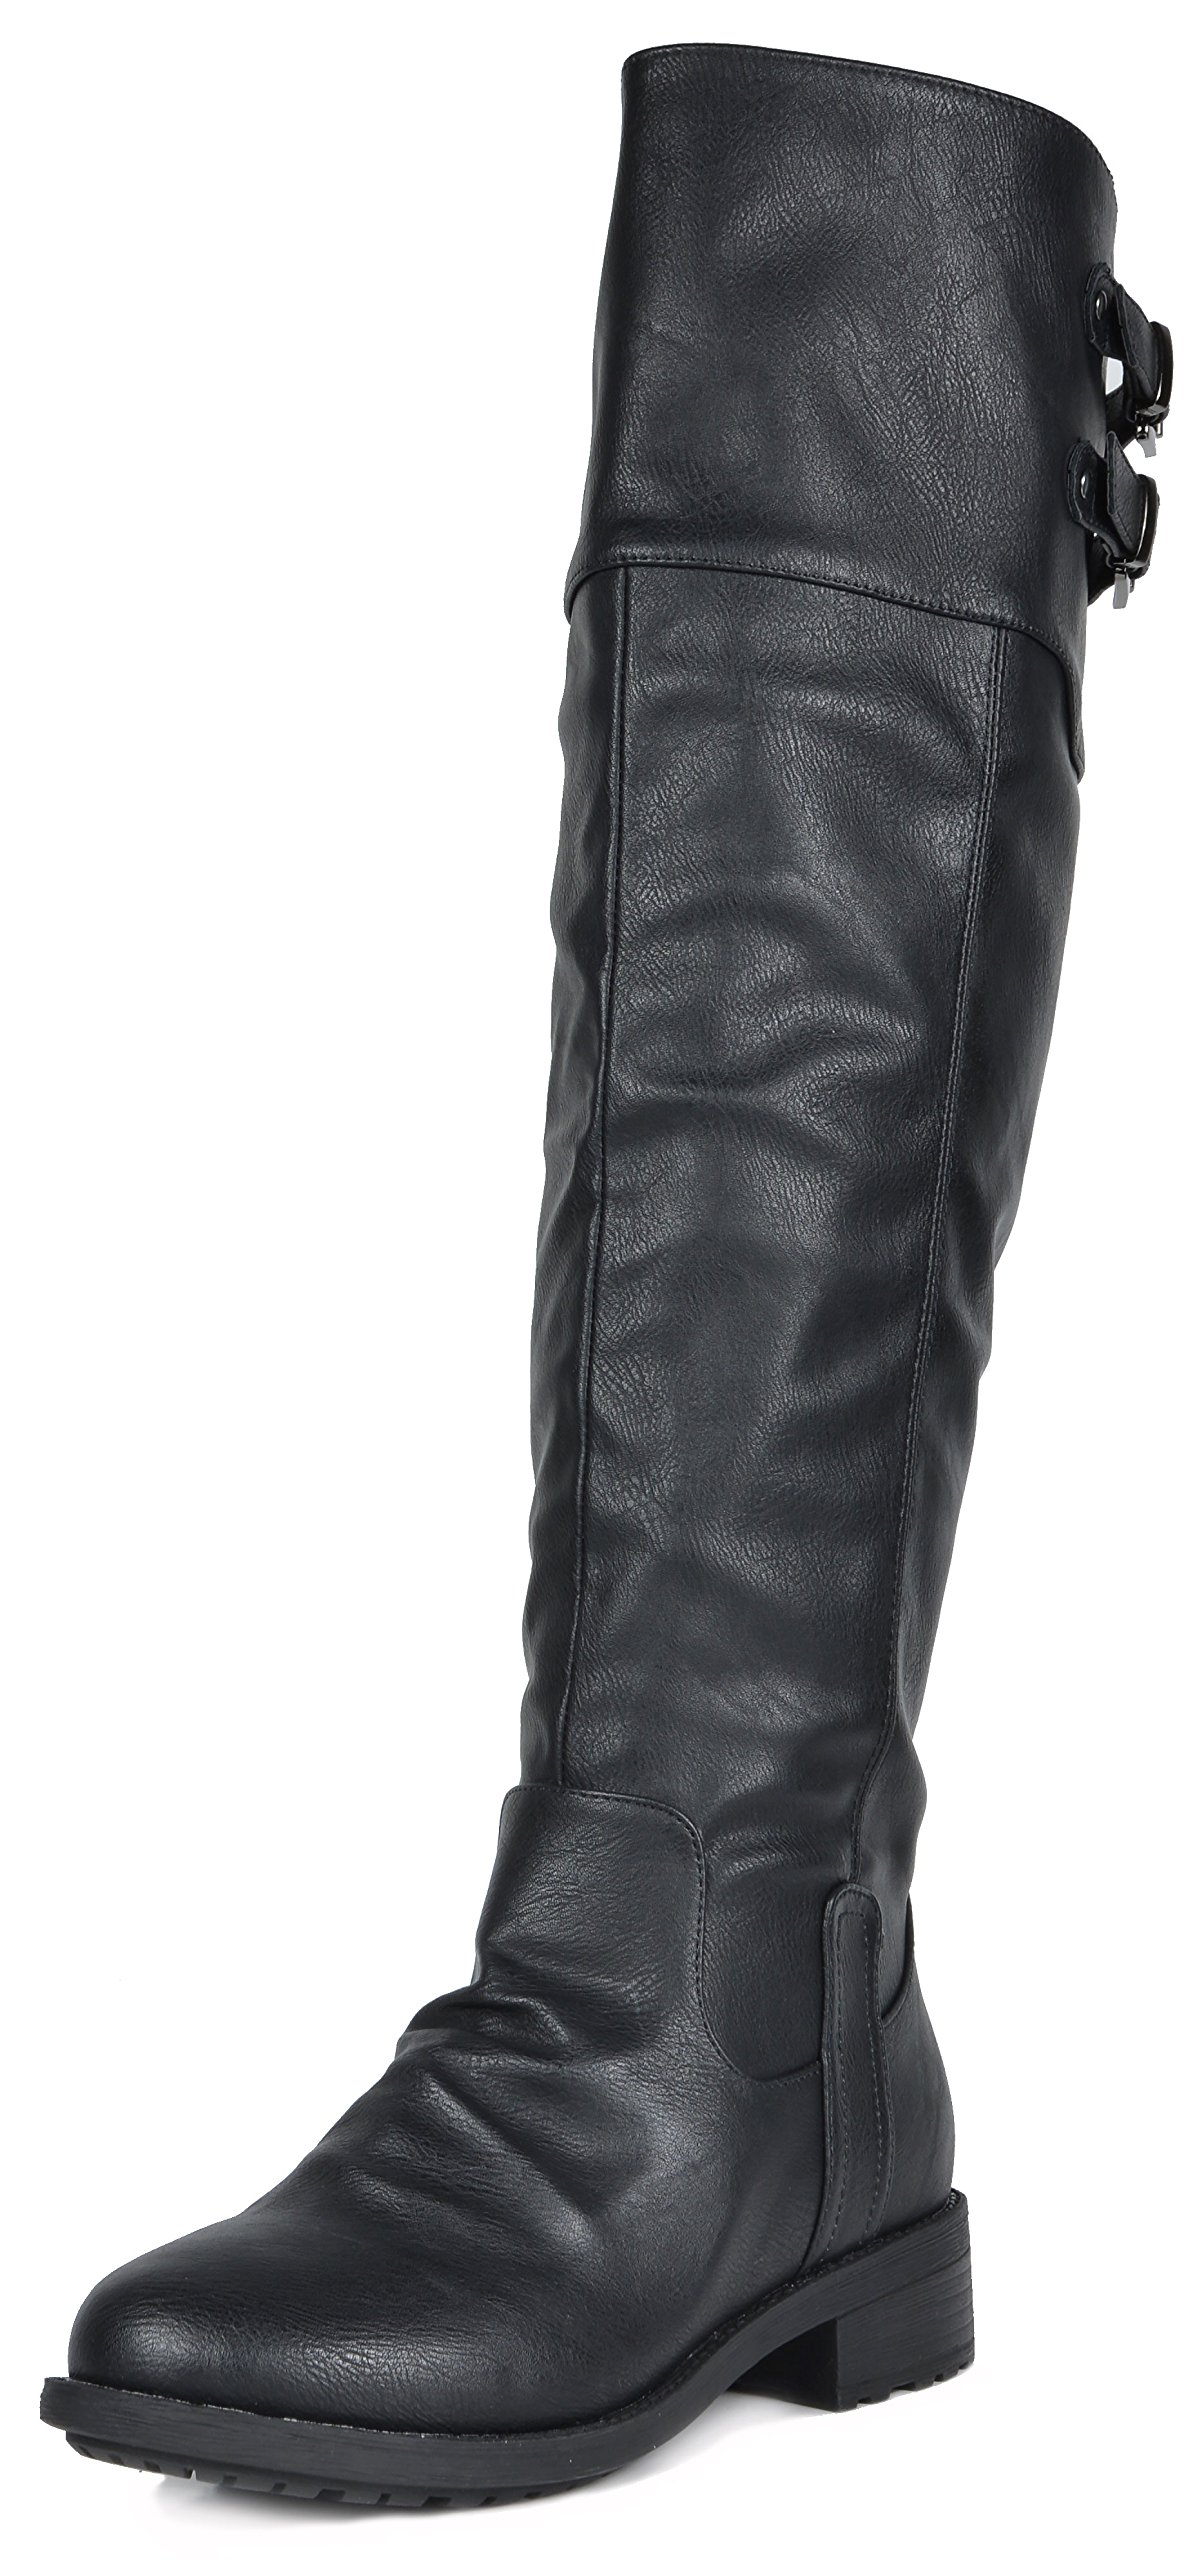 a193b9dd69a DREAM PAIRS Women s Knee High and up Riding Boots (Wide-Calf) product image